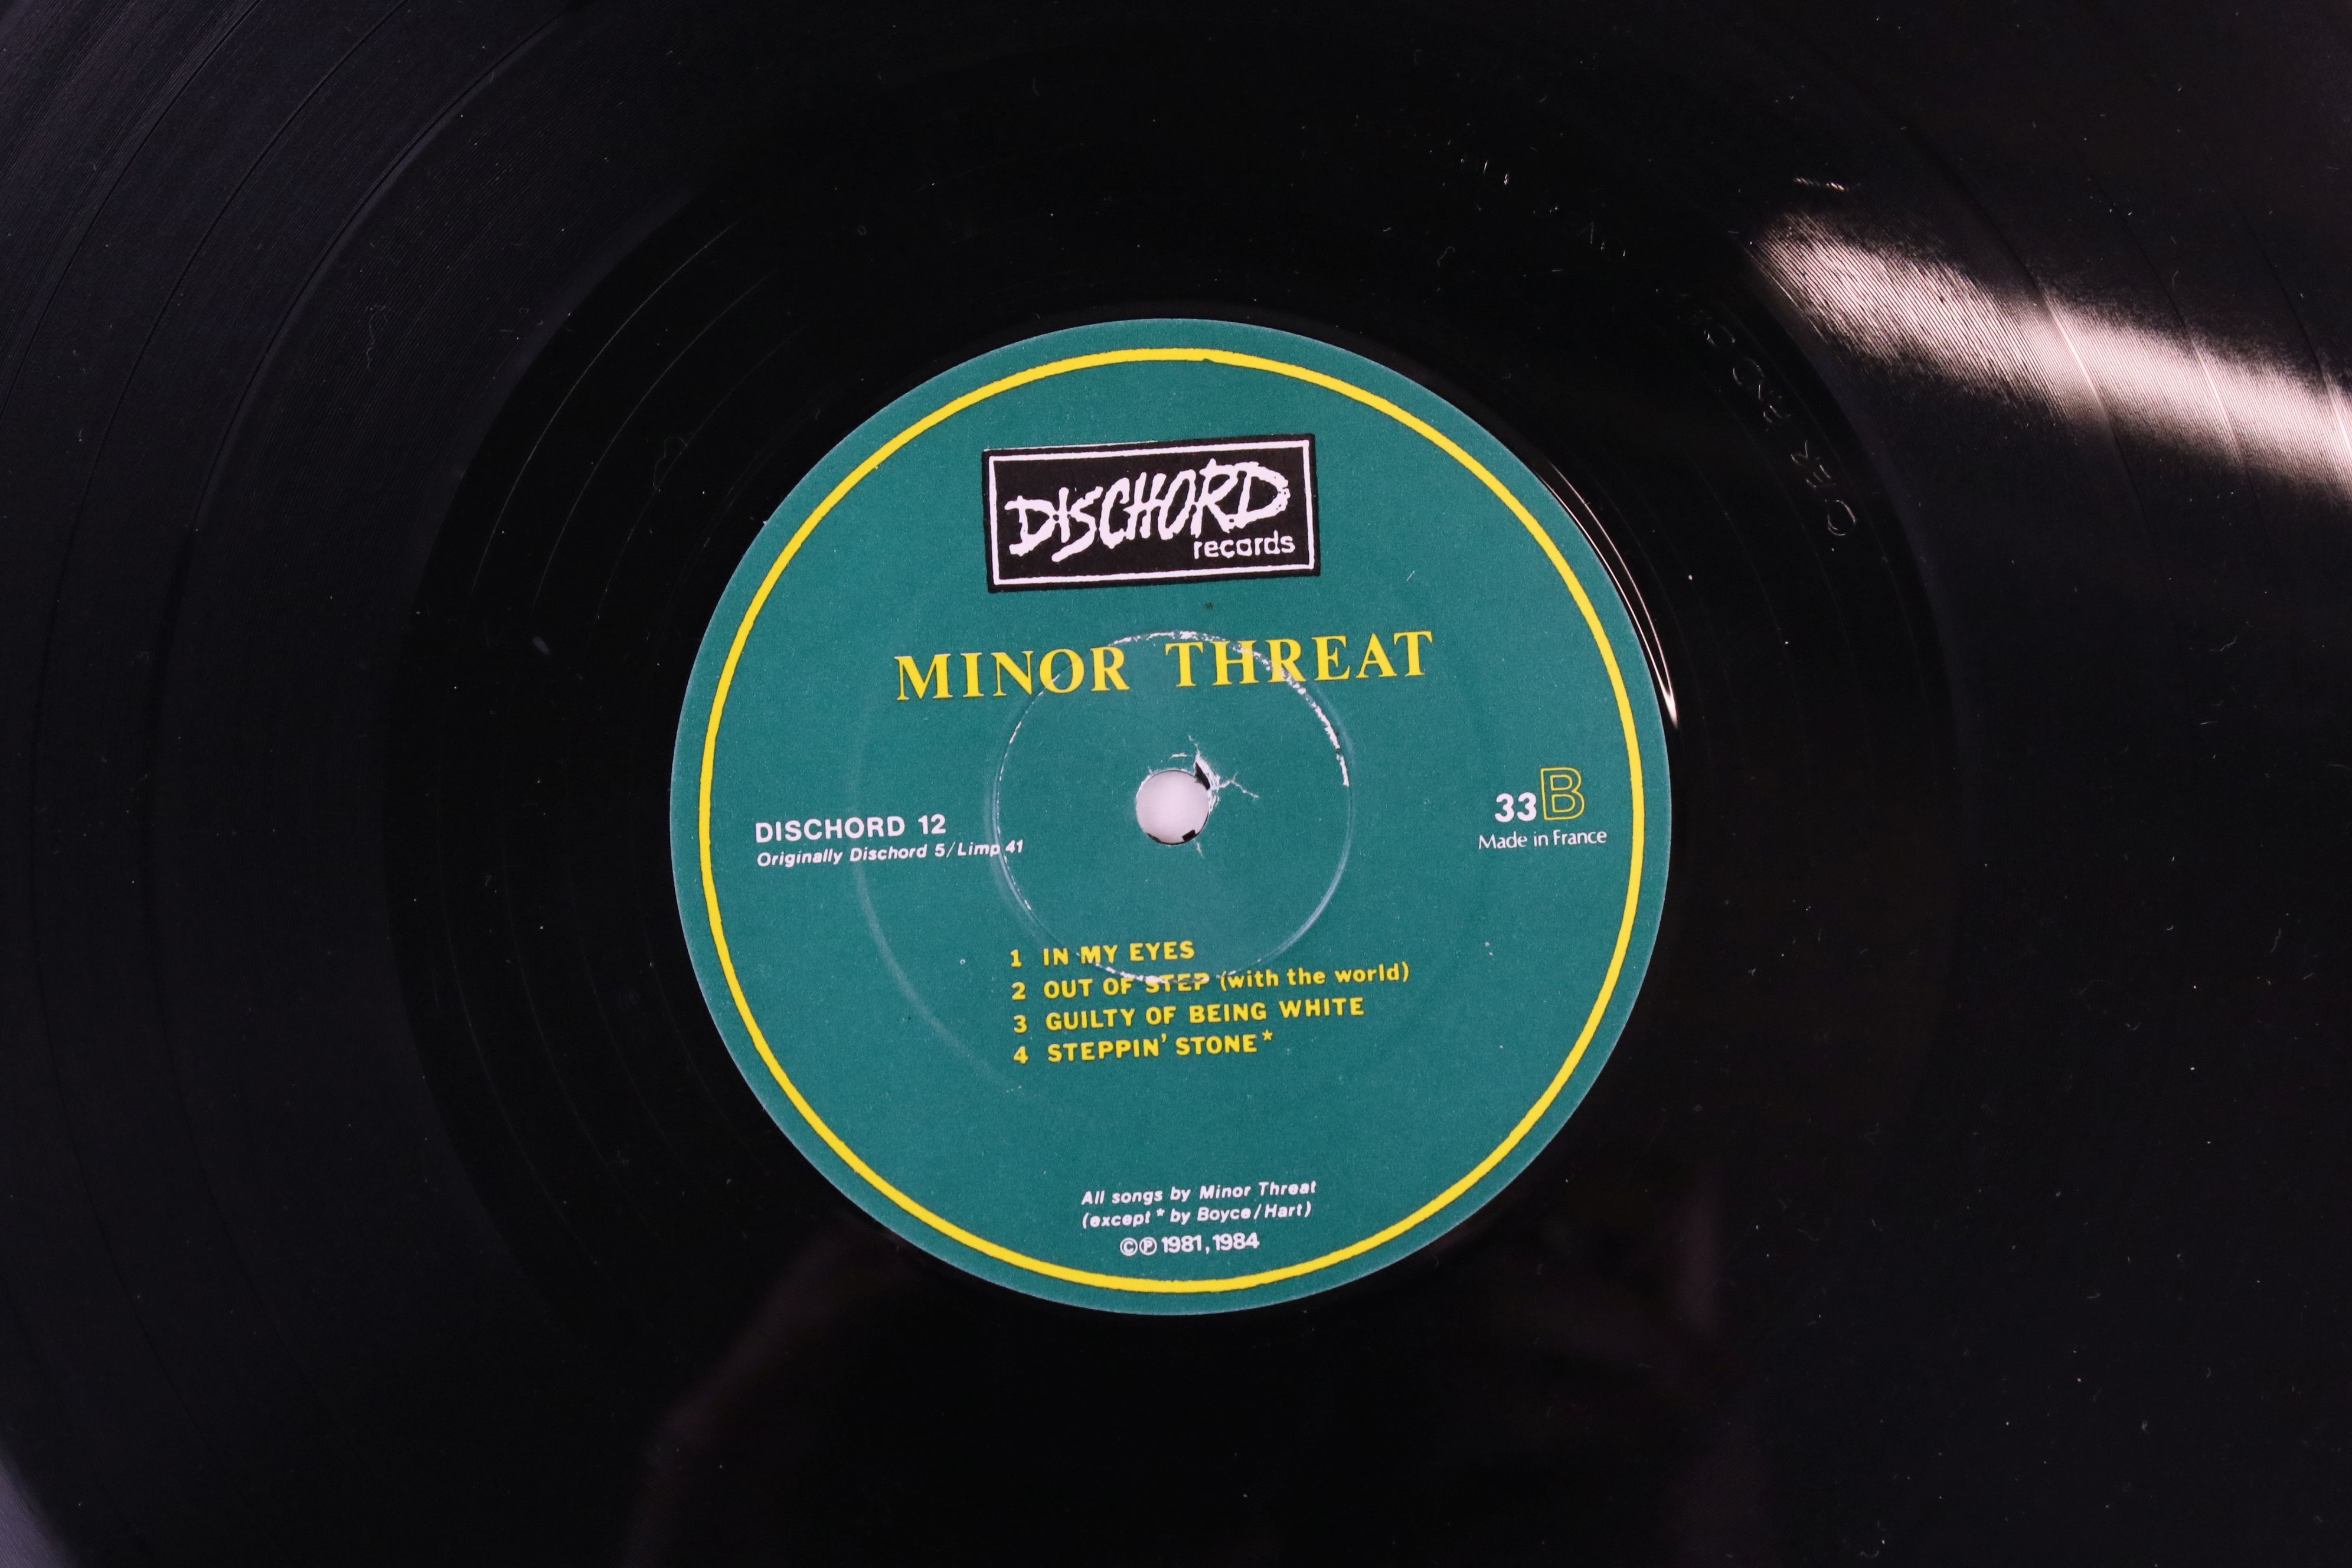 Vinyl - Two Minor Threat LPs to include Out of Step on Dischord No 10 and self titled No 13, both ex - Image 3 of 7